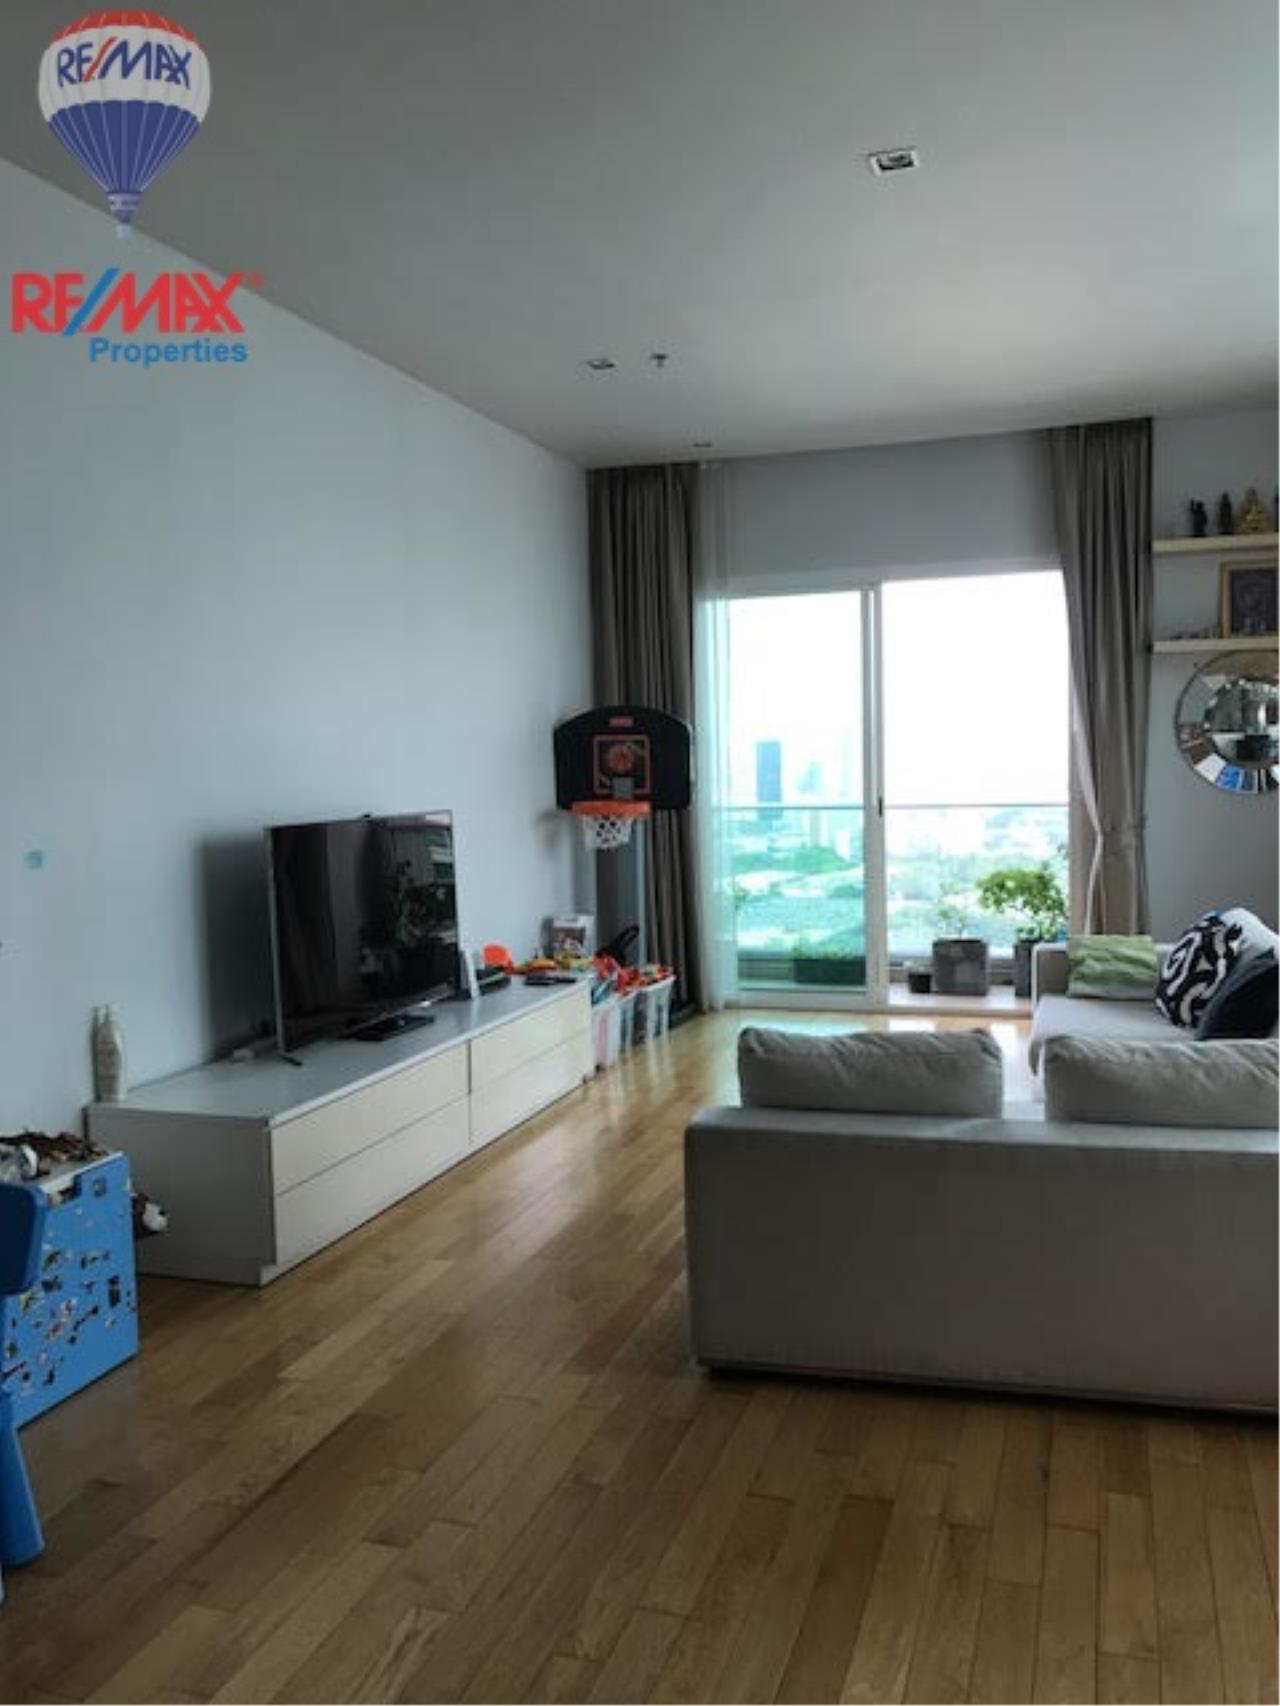 RE/MAX Properties Agency's Condo for Sale , Khlong Toei, Bangkok  1